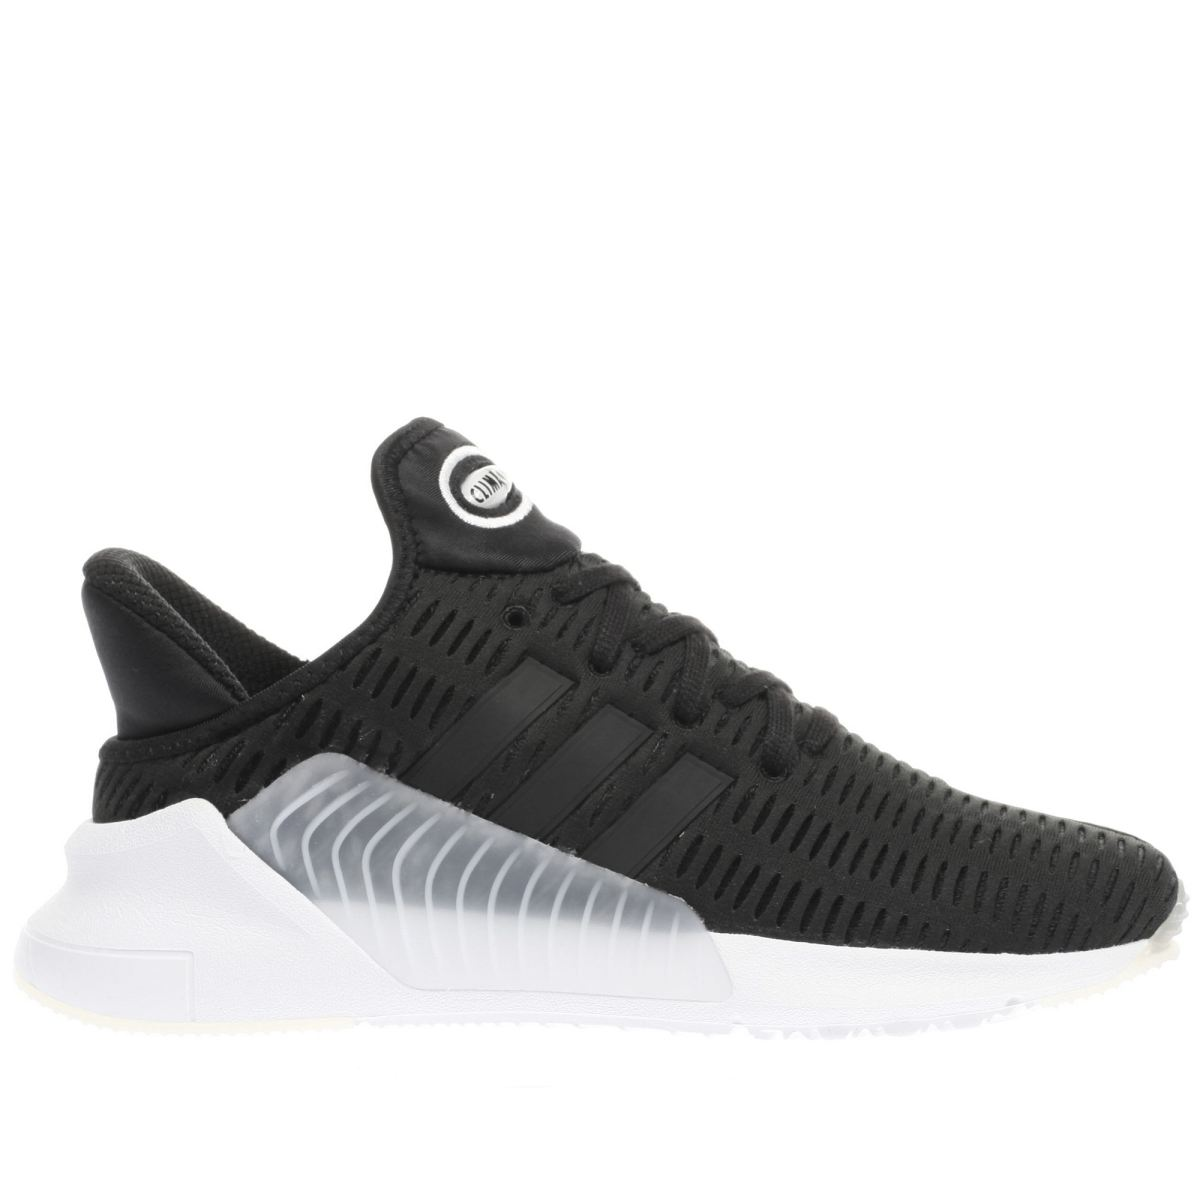 adidas black & white climacool 02.17 trainers